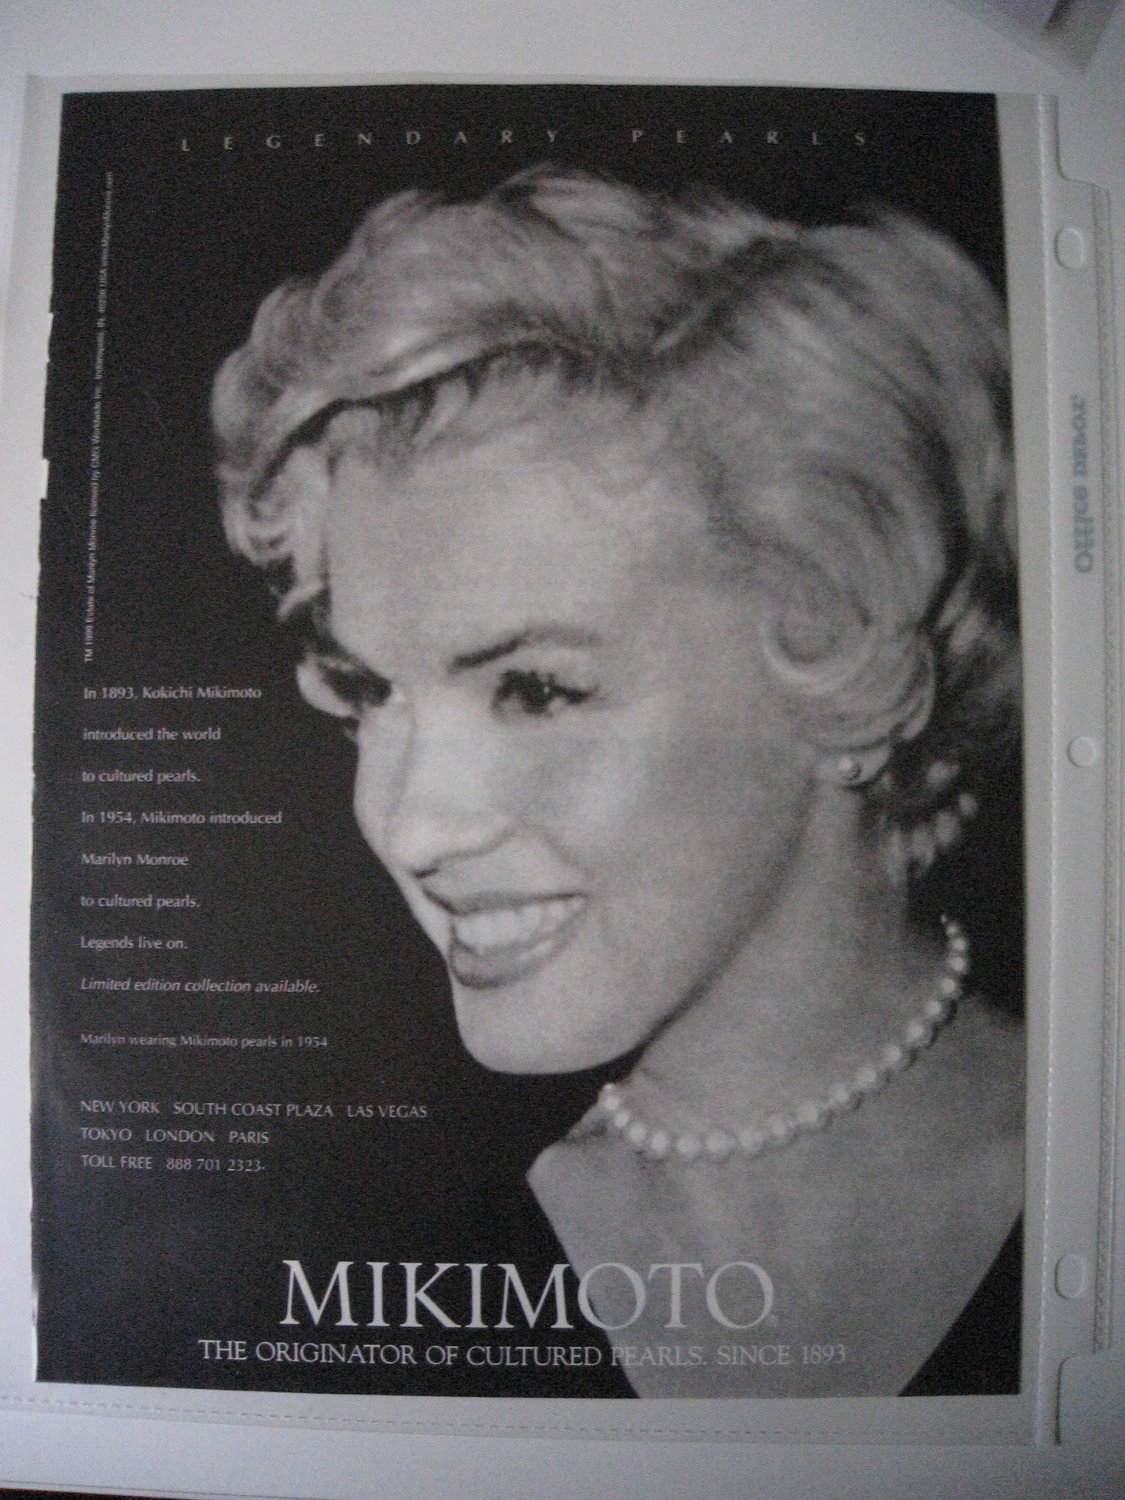 Ad 1999 Ad of Marilyn Monroe Wearing Mikimoto Pearls in 1954 Legendary Pearls